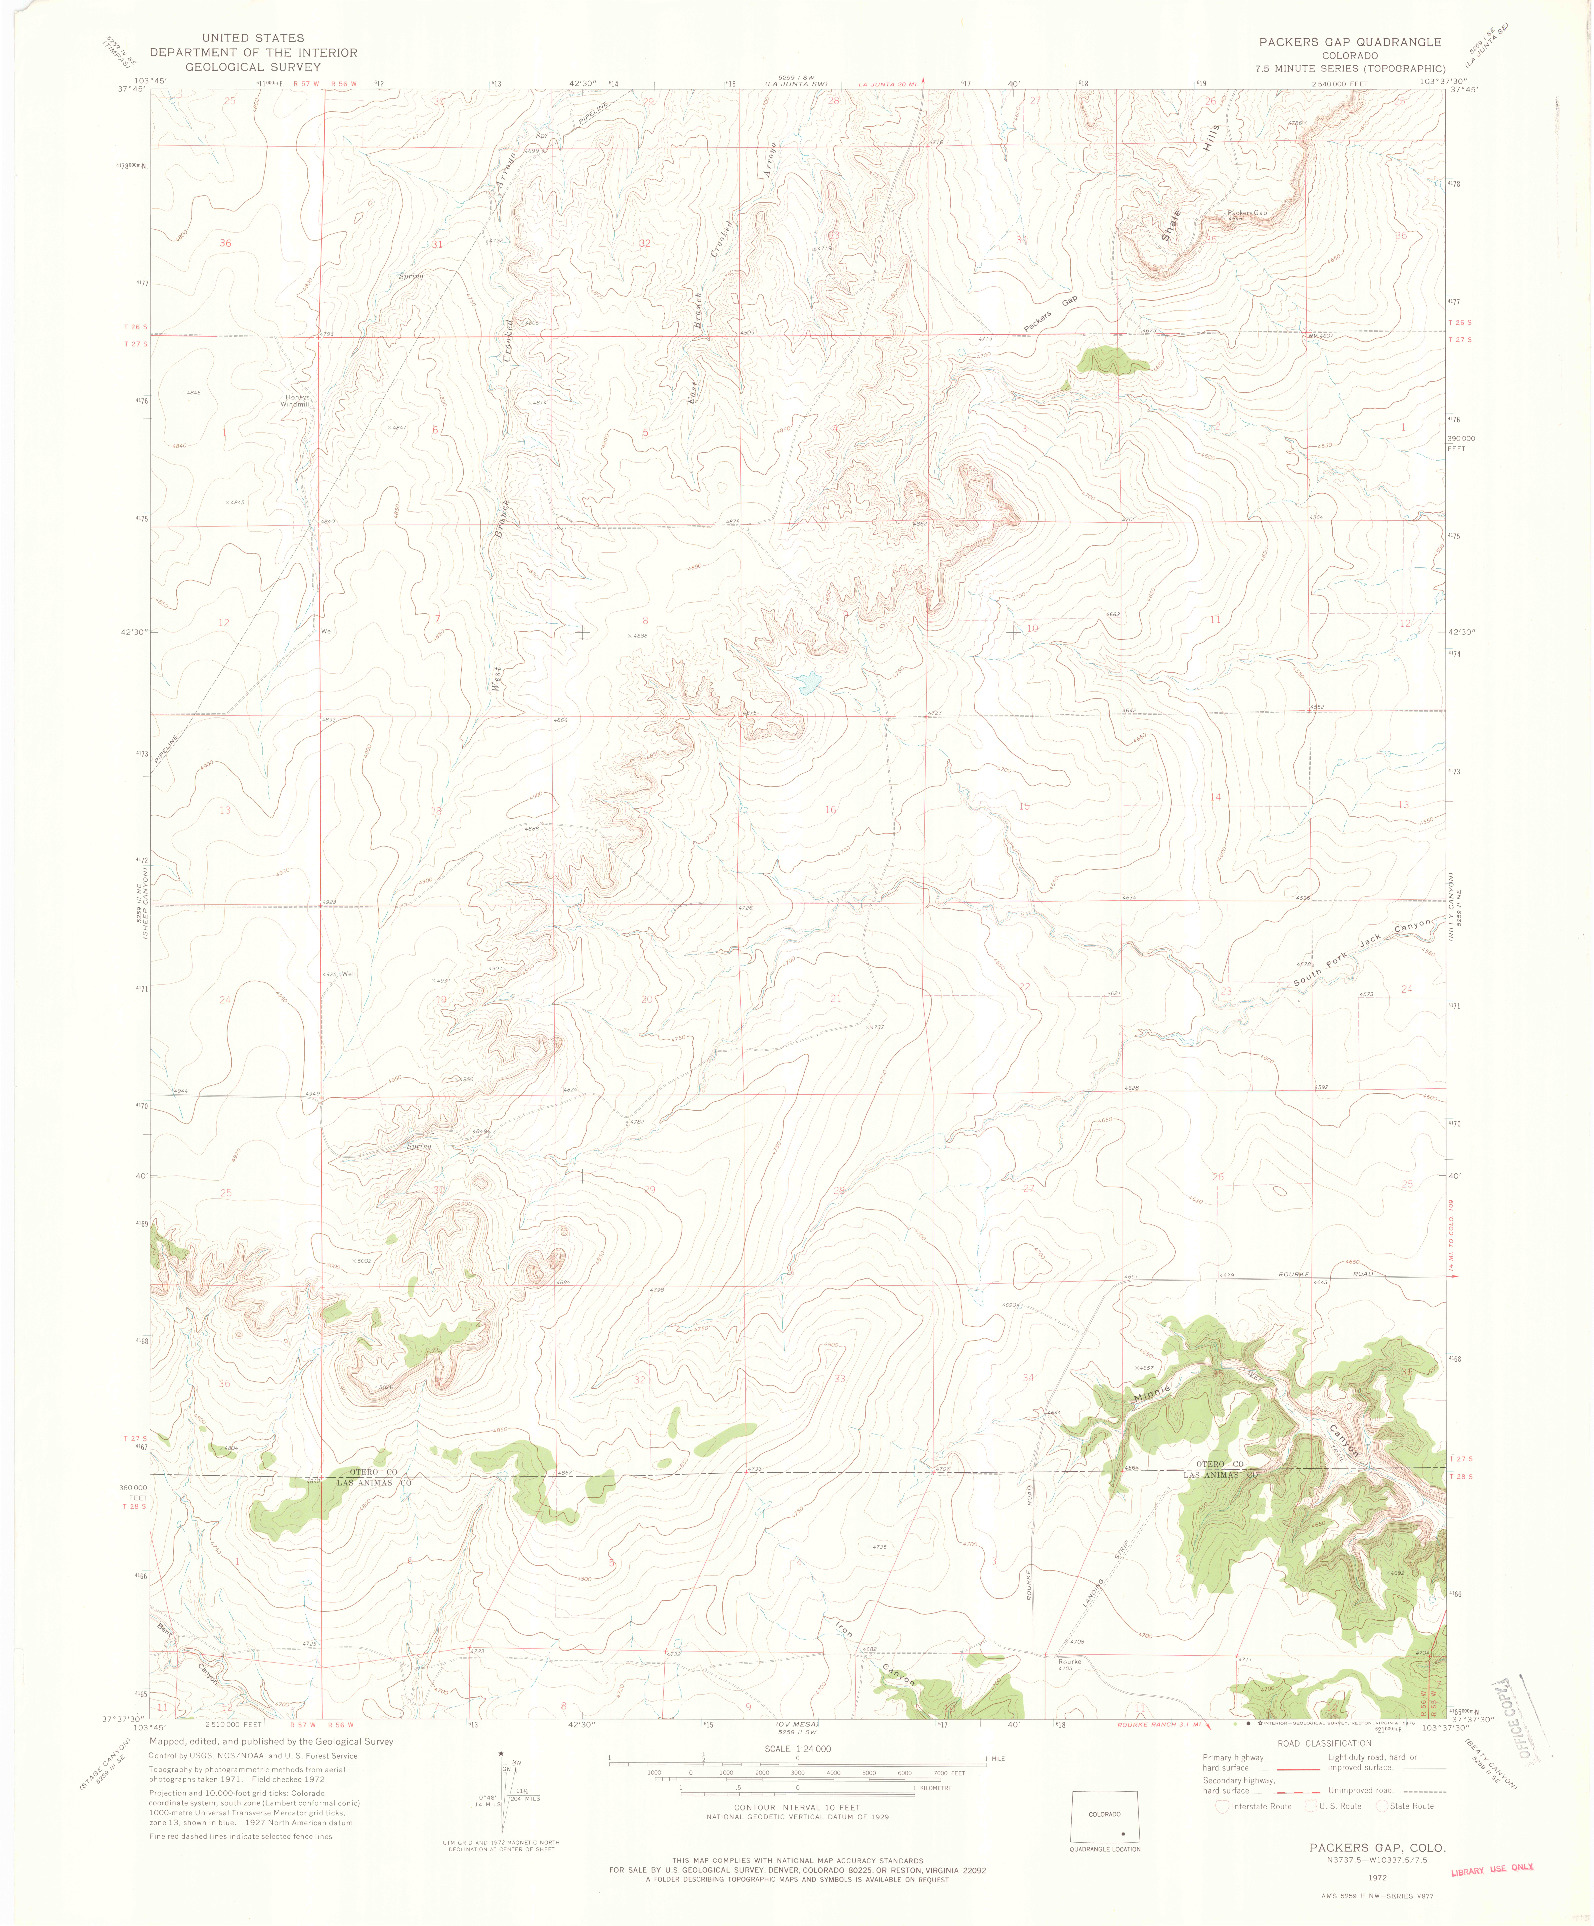 USGS 1:24000-SCALE QUADRANGLE FOR PACKERS GAP, CO 1972